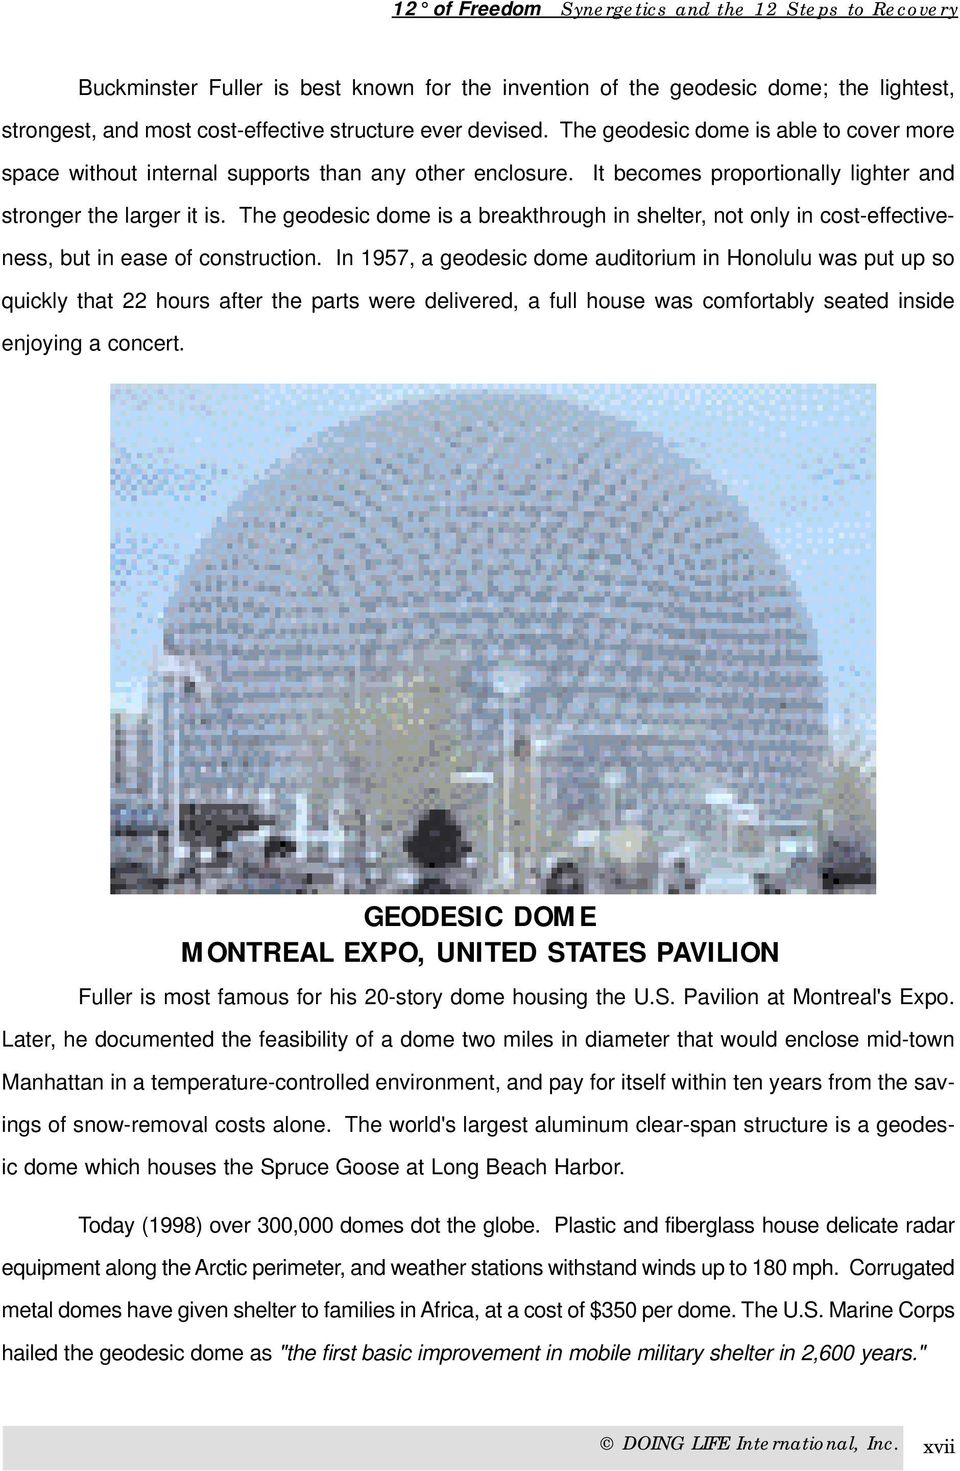 The geodesic dome is a breakthrough in shelter, not only in cost-effectiveness, but in ease of construction.